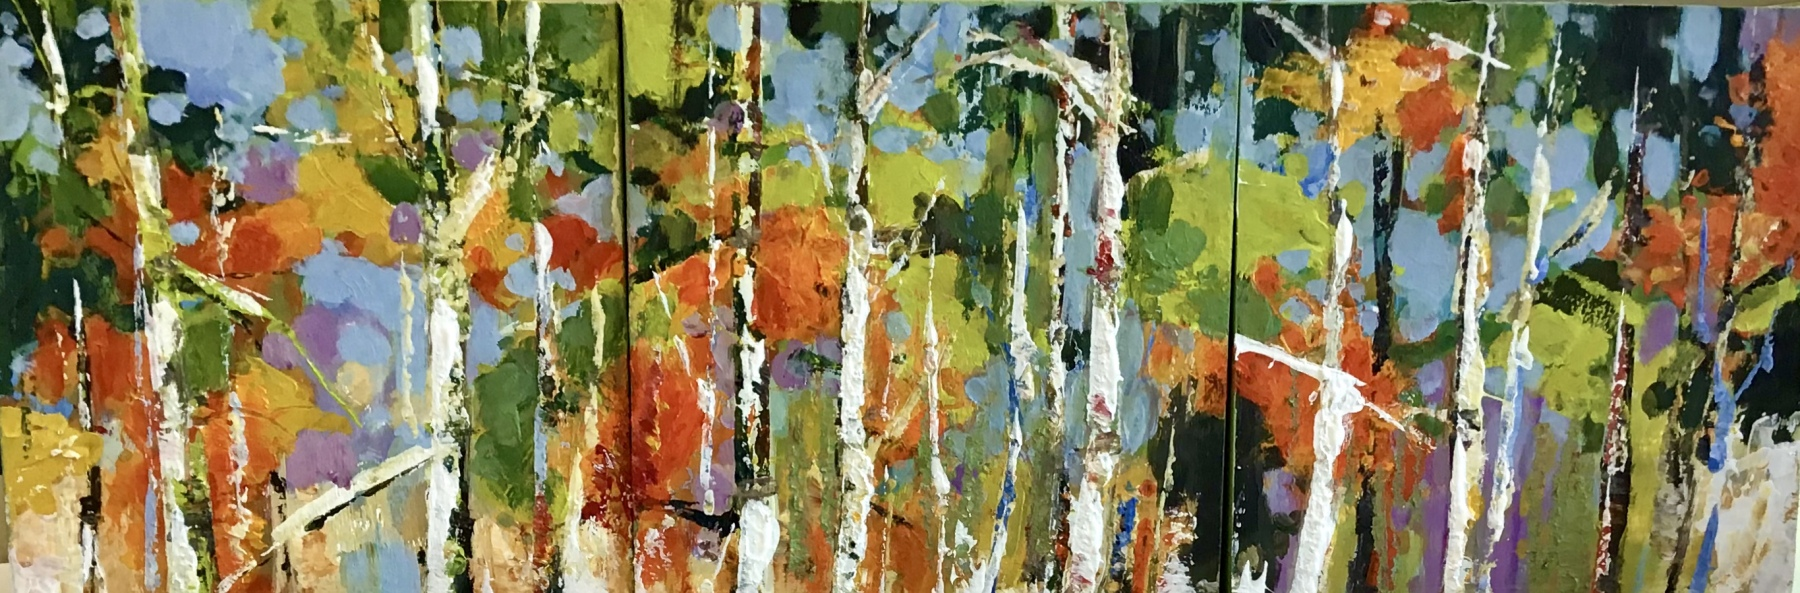 SOLD - BIRCH TREE TRAILS